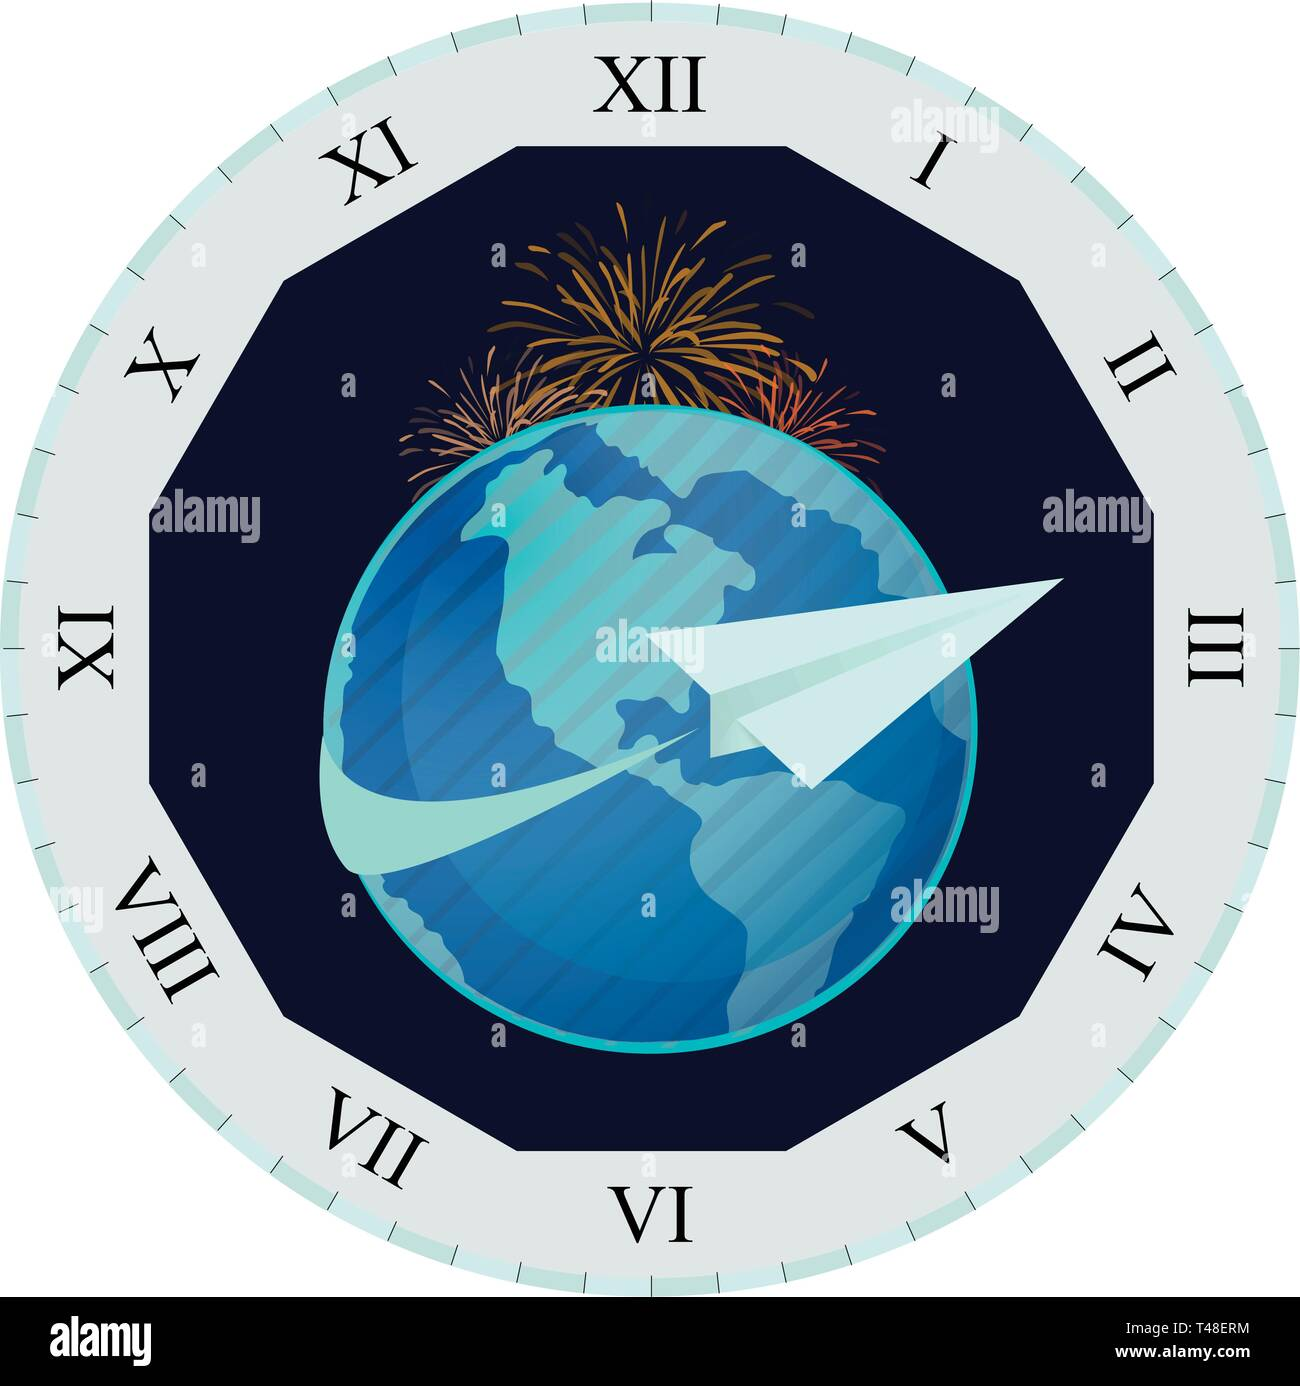 New Year's Eve Paper Airplane Clock - Stock Vector